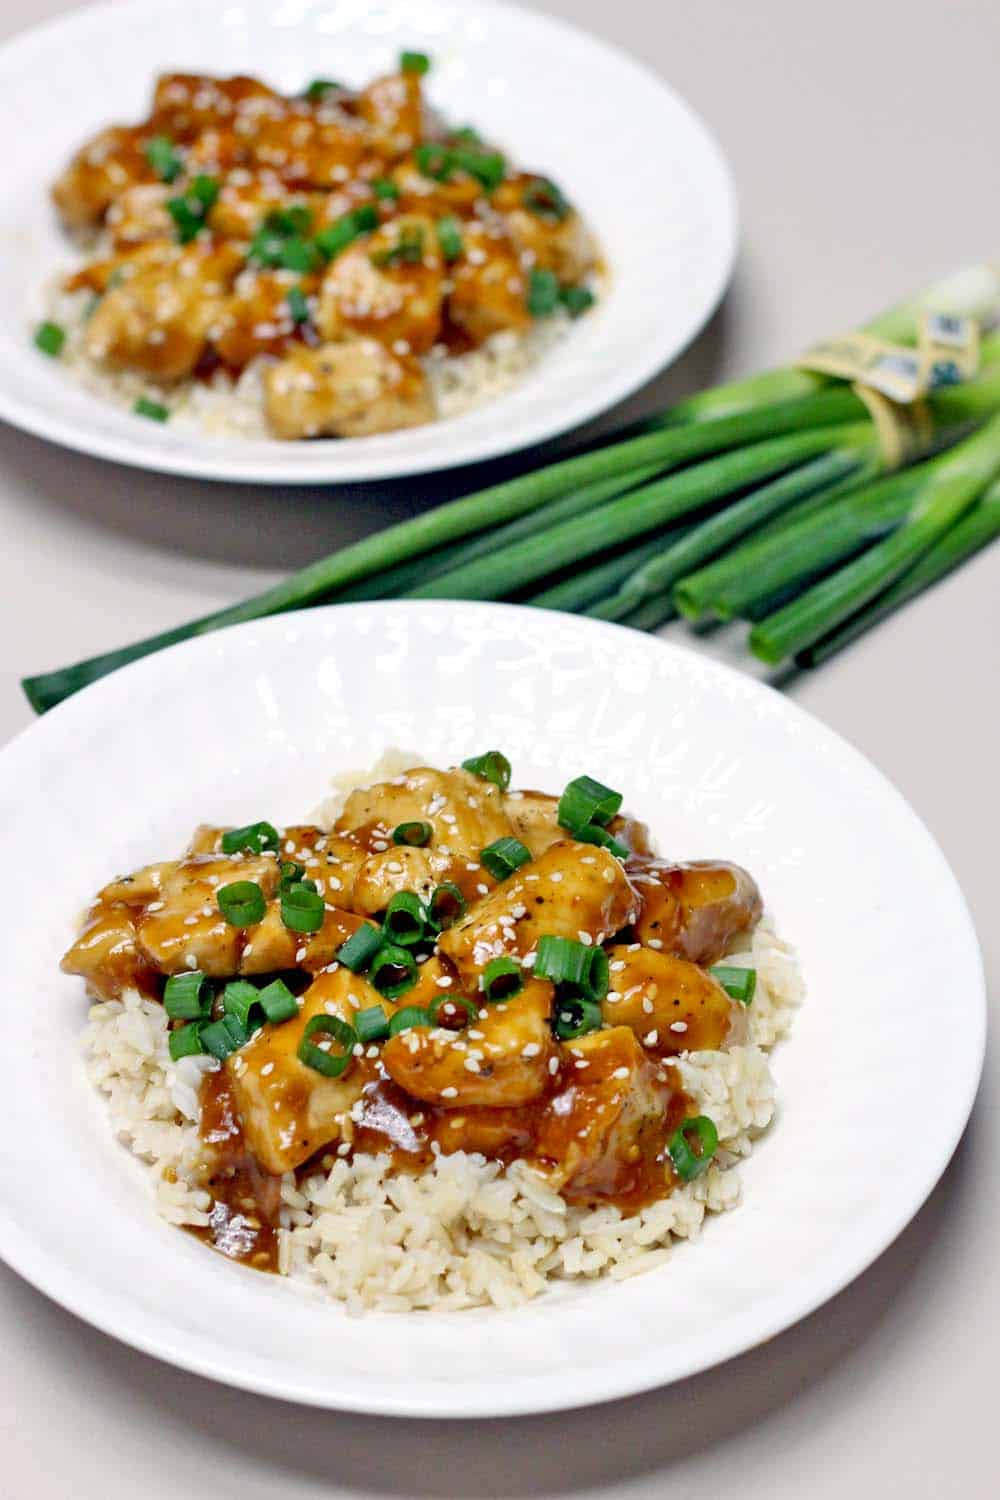 Skinny Orange Sesame Chicken   The skinny version of one of your Chinese take-out favorites, this orange sesame chicken is not deep fried so it's lighter and healthier. It's SO EASY to make at home in only twenty minutes!